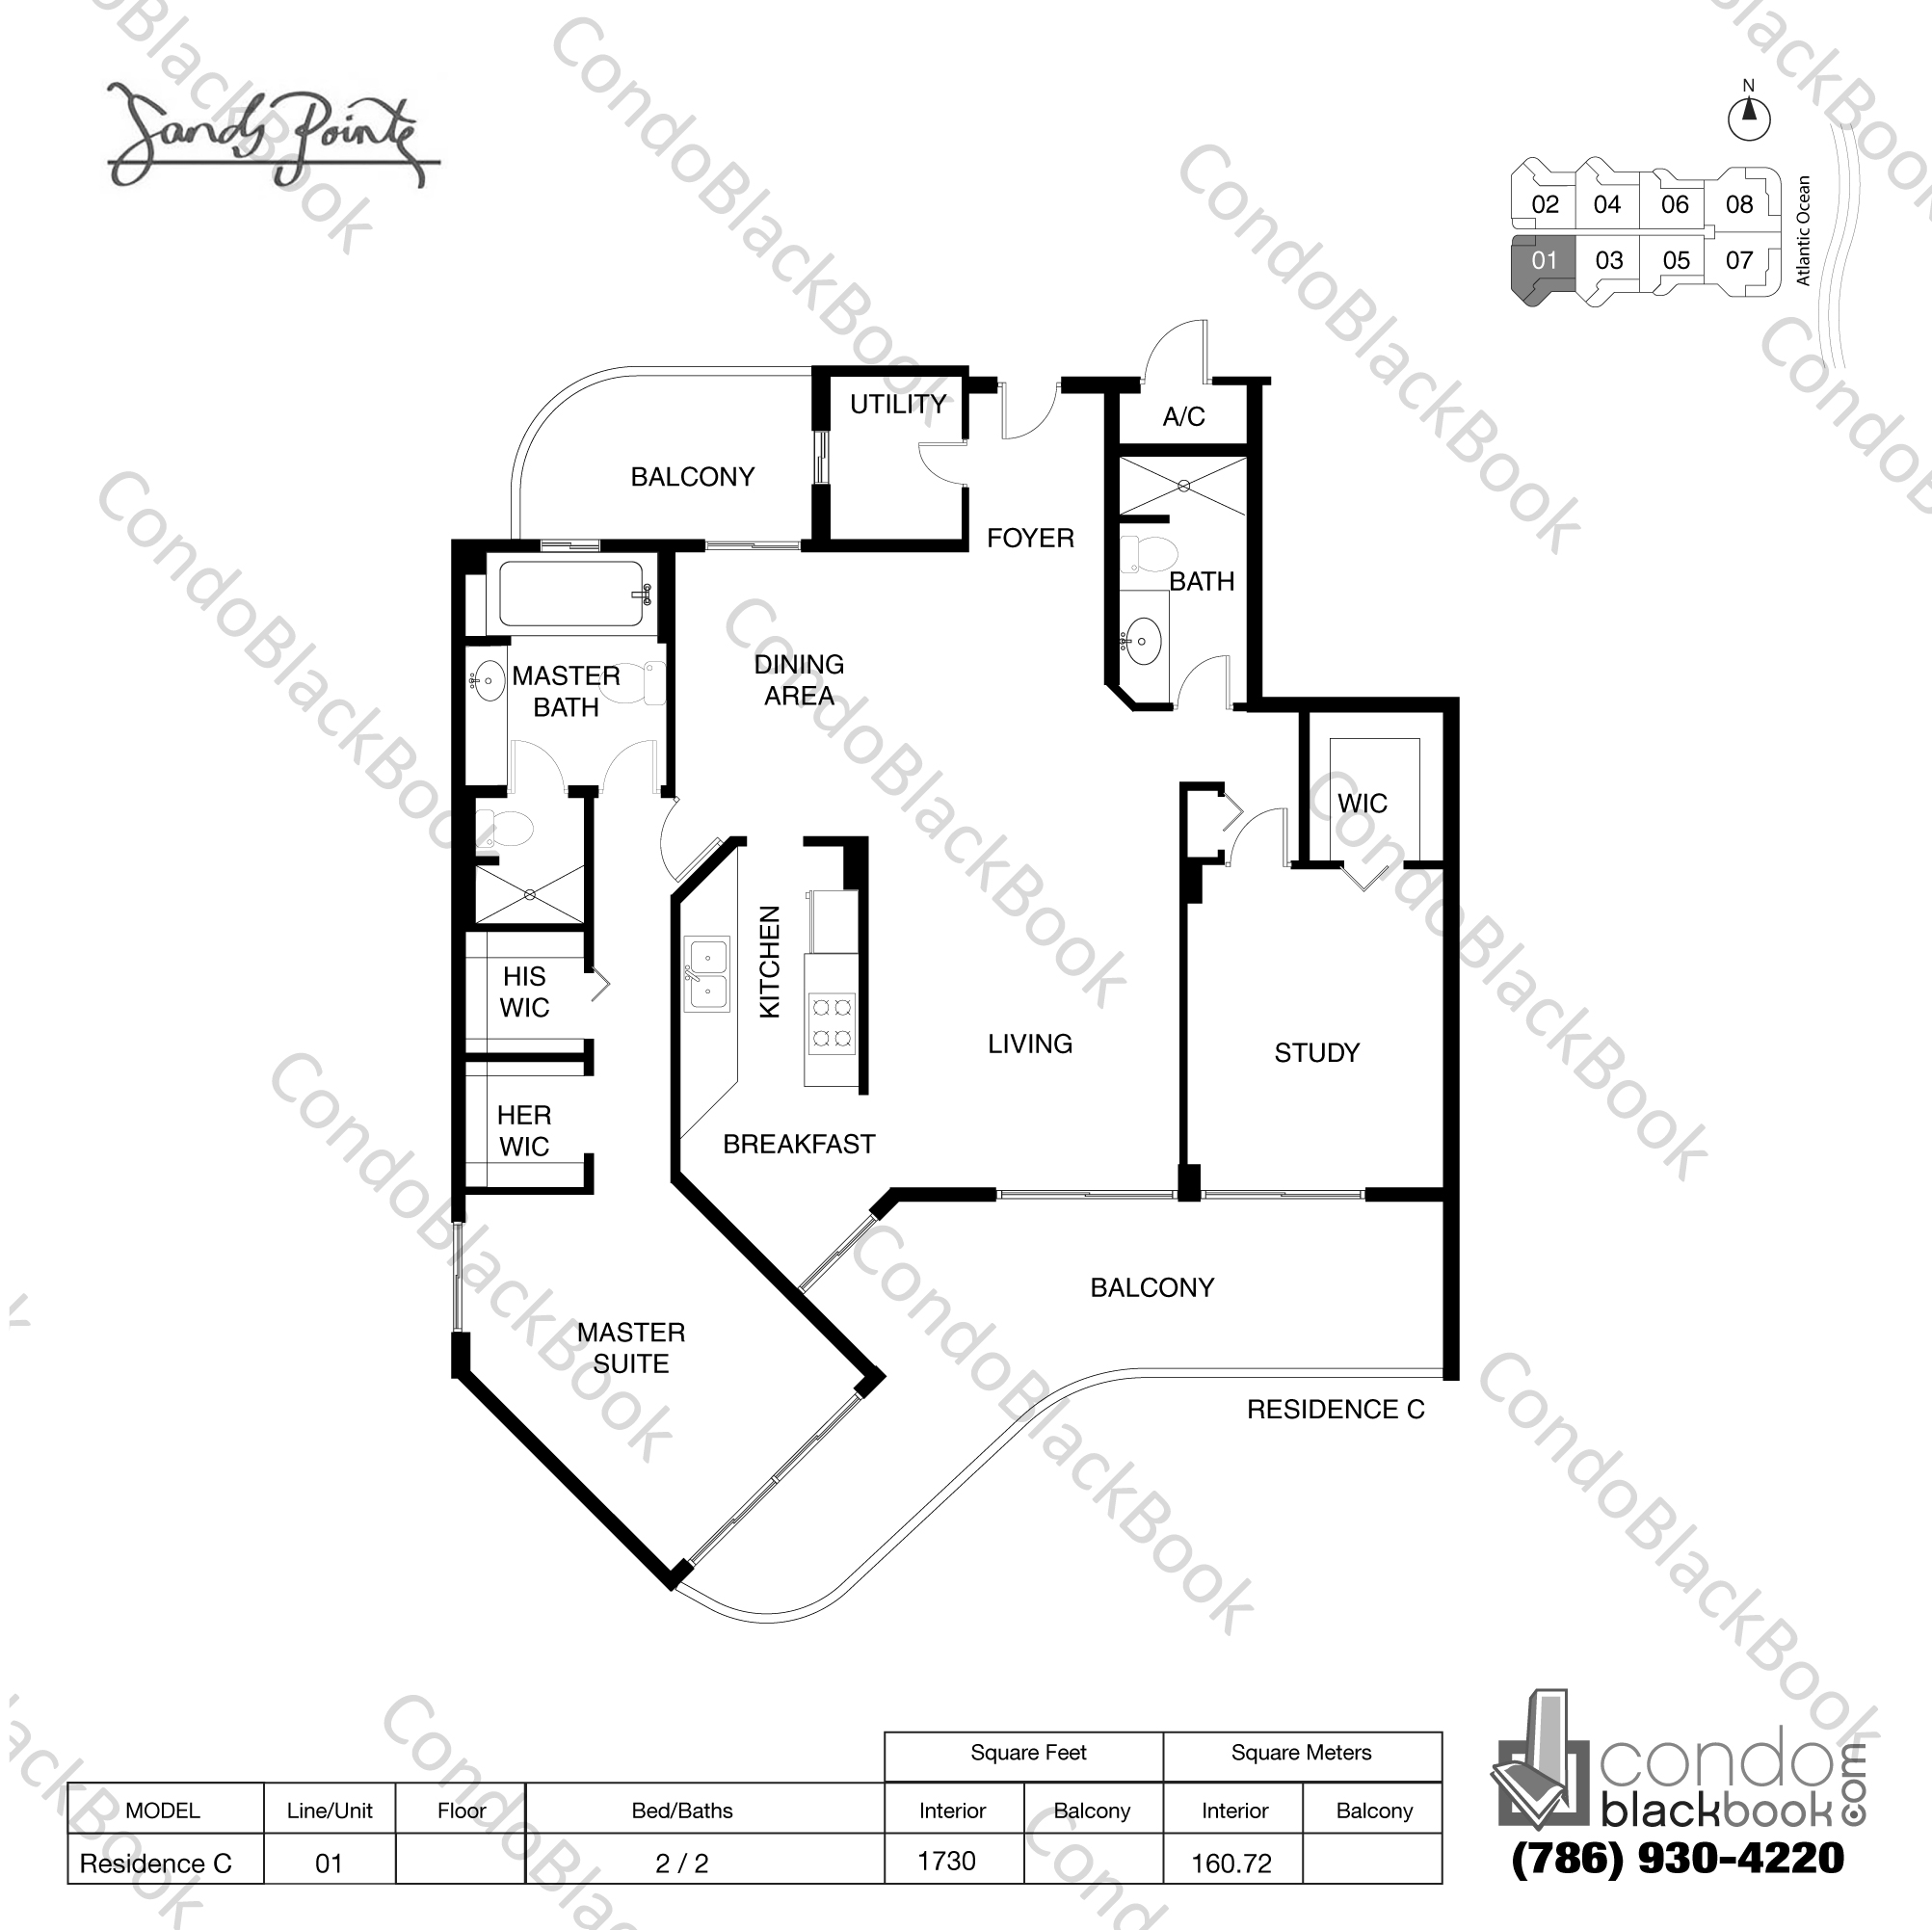 Floor plan for Sands Pointe Sunny Isles Beach, model Residence C, line 01, 2 / 2 bedrooms, 1730 sq ft